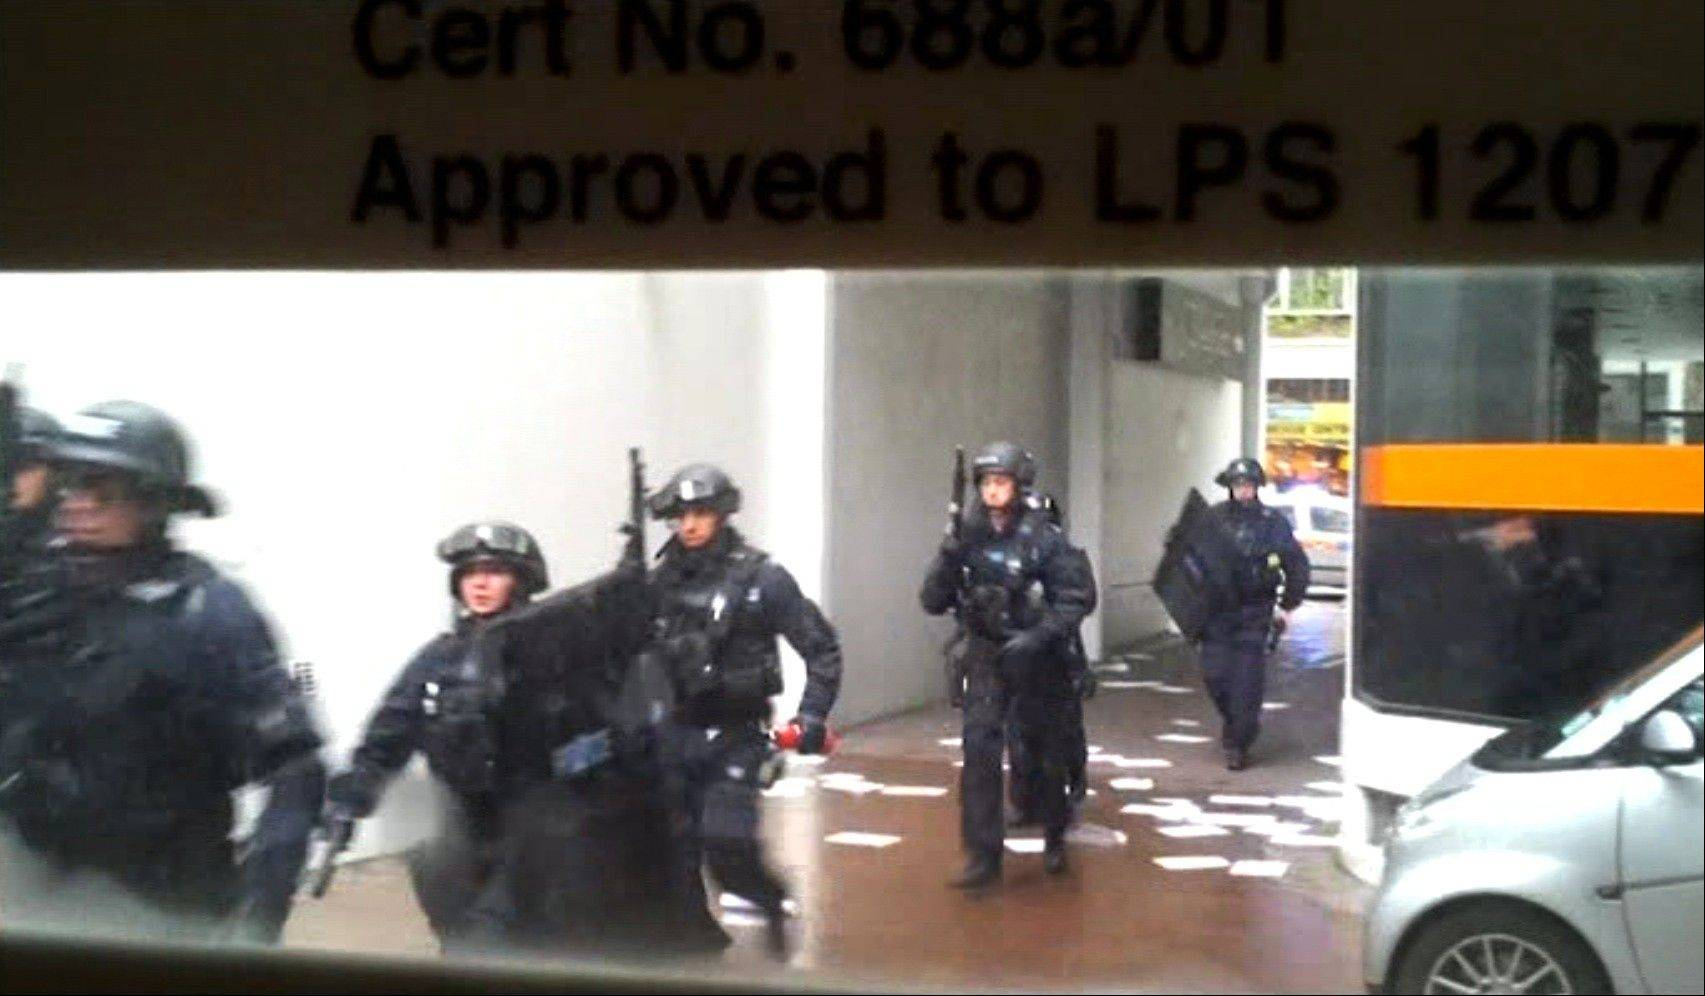 This video image taken from amateur video shows heavily armed, masked police entering a building in central London Friday.